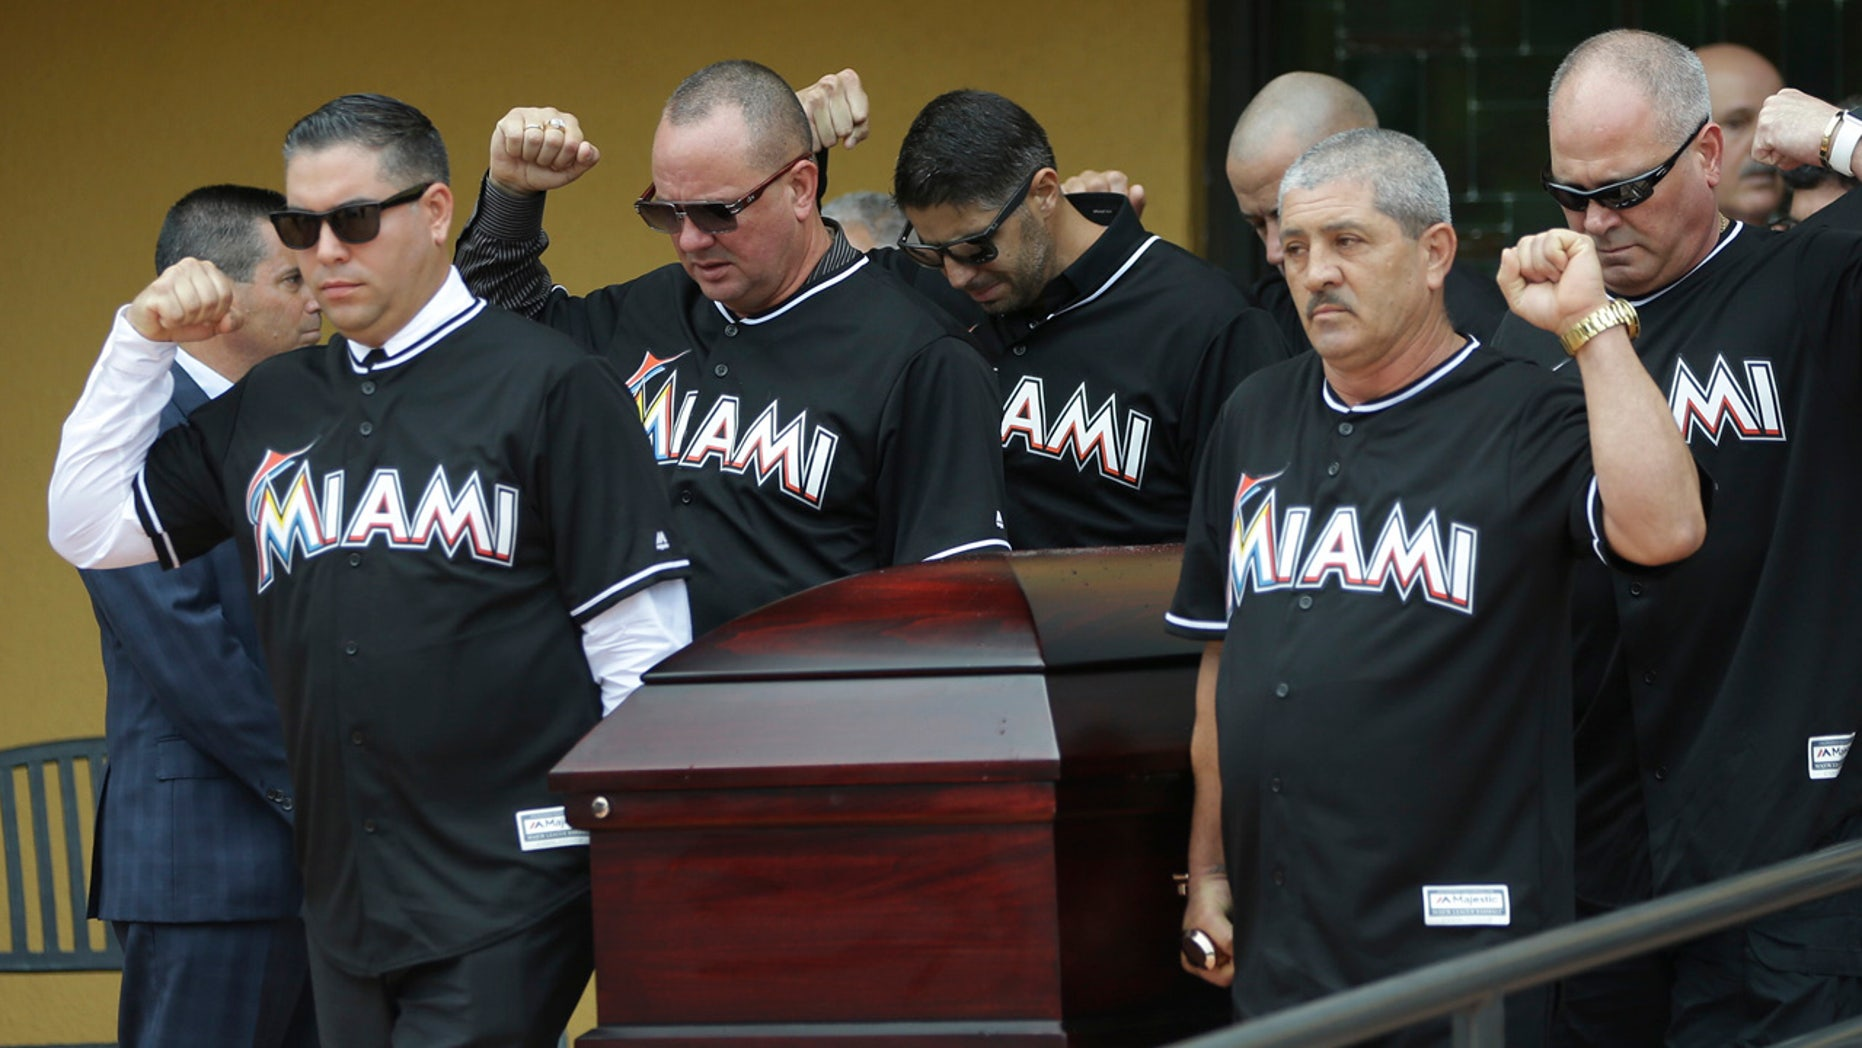 Sept. 29, 2016: Pallbearers wearing Miami Marlins jerseys carry the casket of Miami Marlins pitcher Jose Fernandez, after a funeral service at St. Brendan's Catholic Church in Miami.